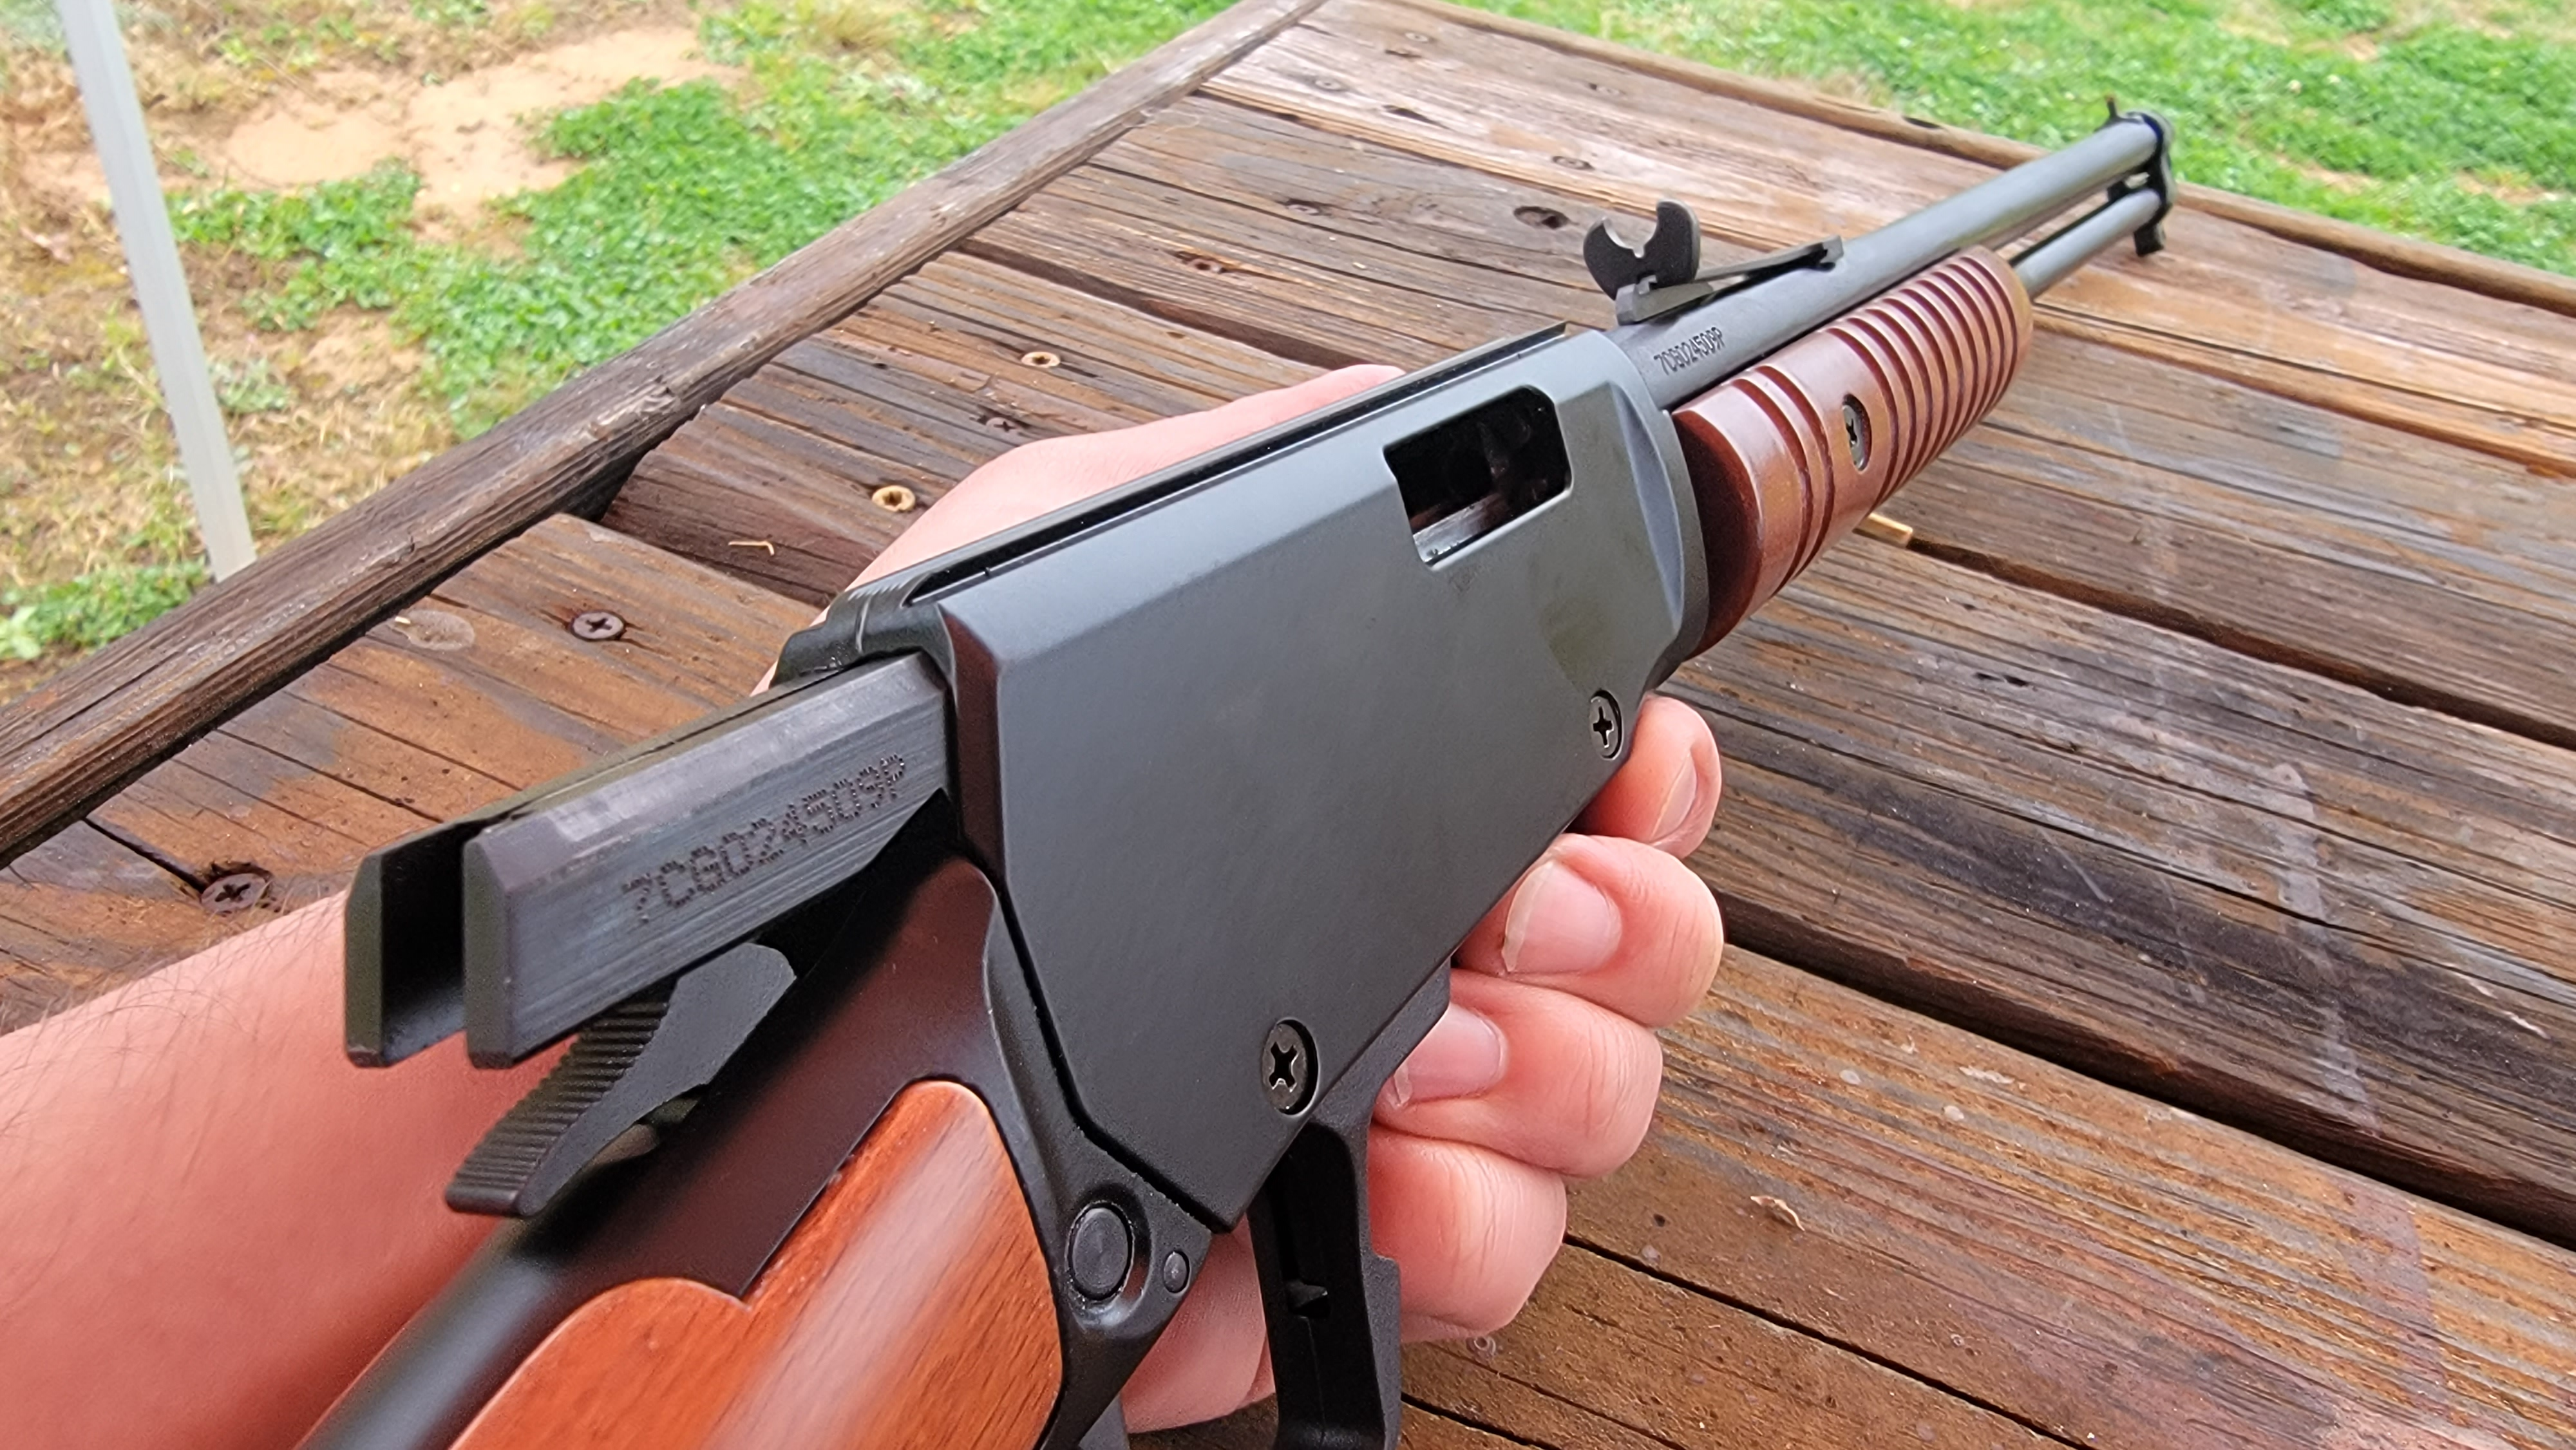 Pump Action Rimfire Rifle - The 15-Shot Rossi Gallery 22